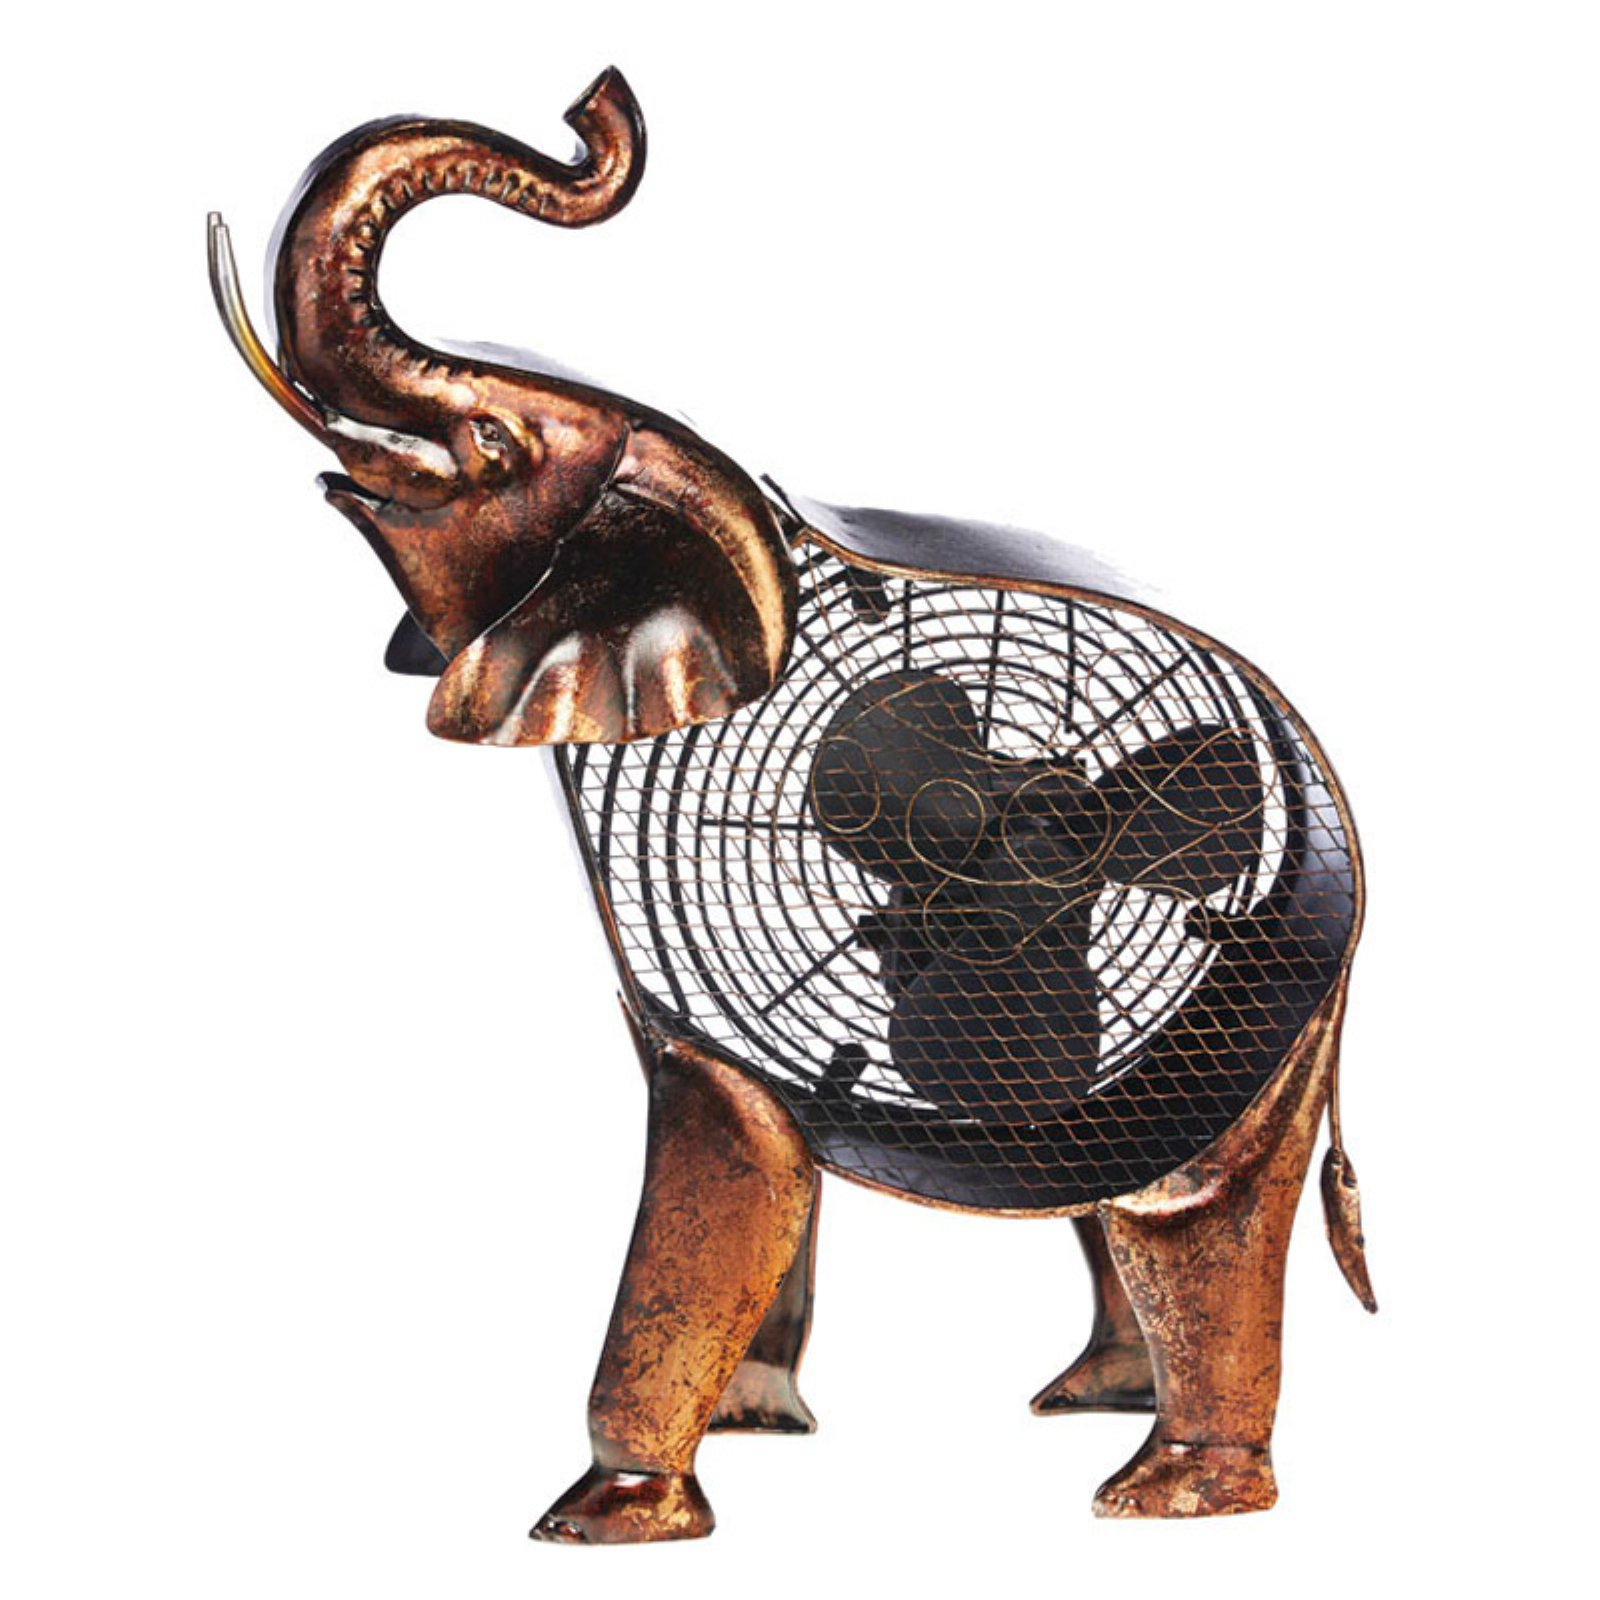 DecoFLAIR Table Fan Two-Speed Electric Circulating Fan, African Elephant Figurine Fan